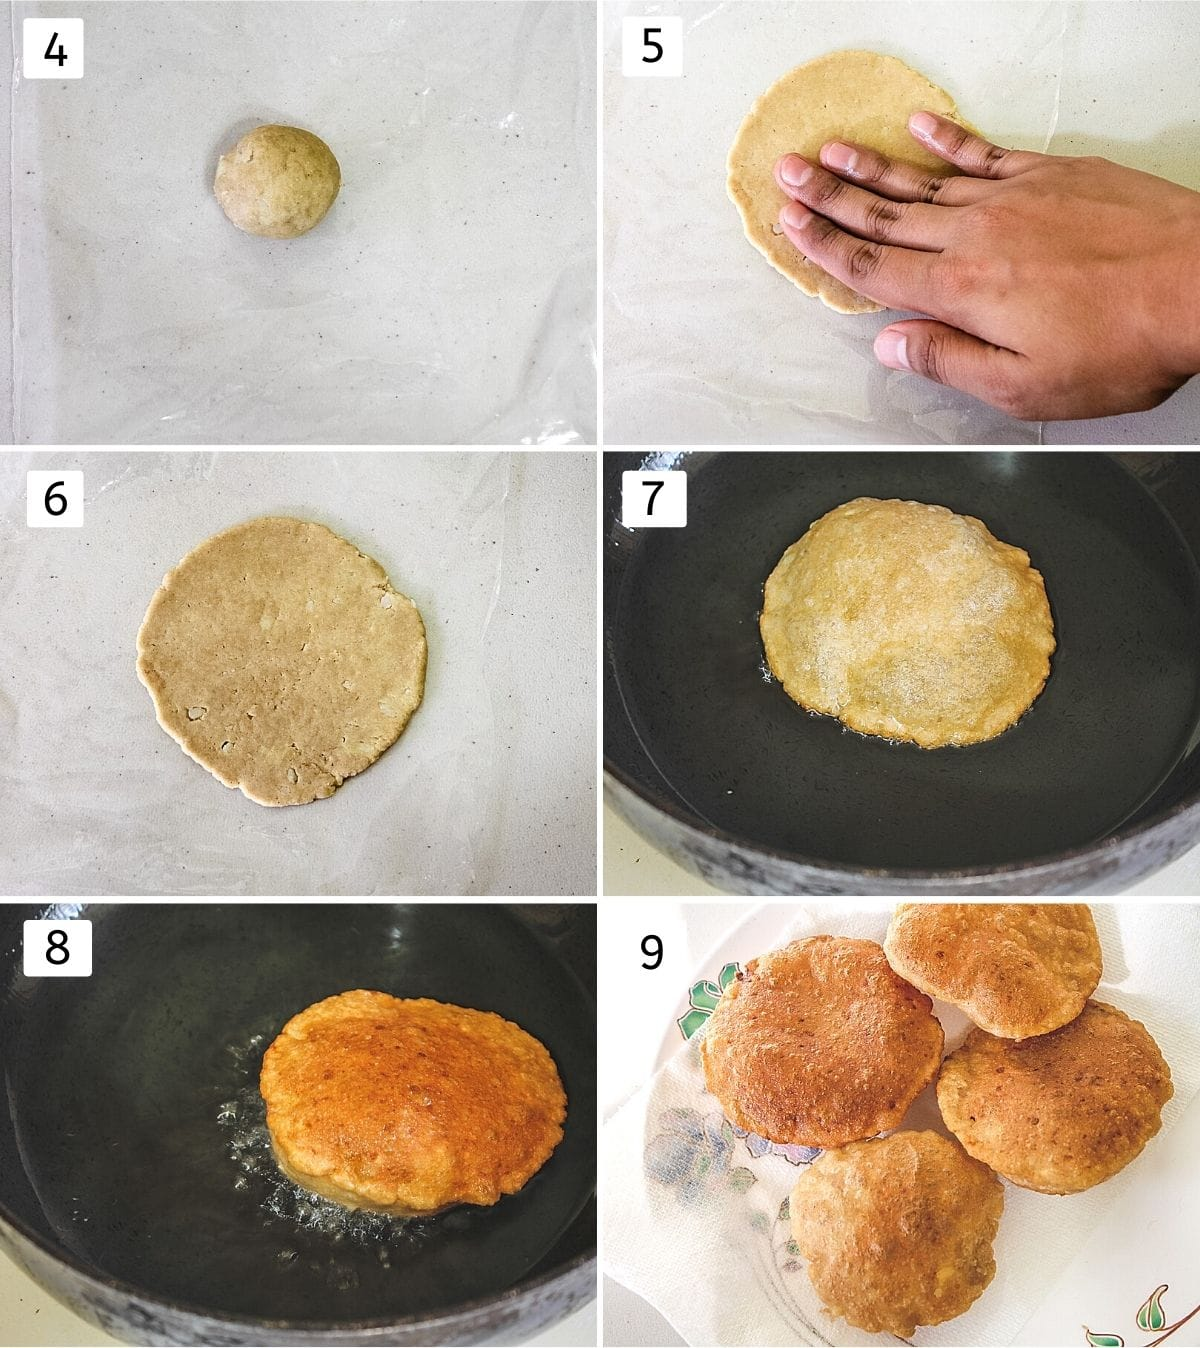 Collage of 6 steps showing small dough ball, patting by hand, rolled puri, added into the oil, flipped, fried puri in a plate